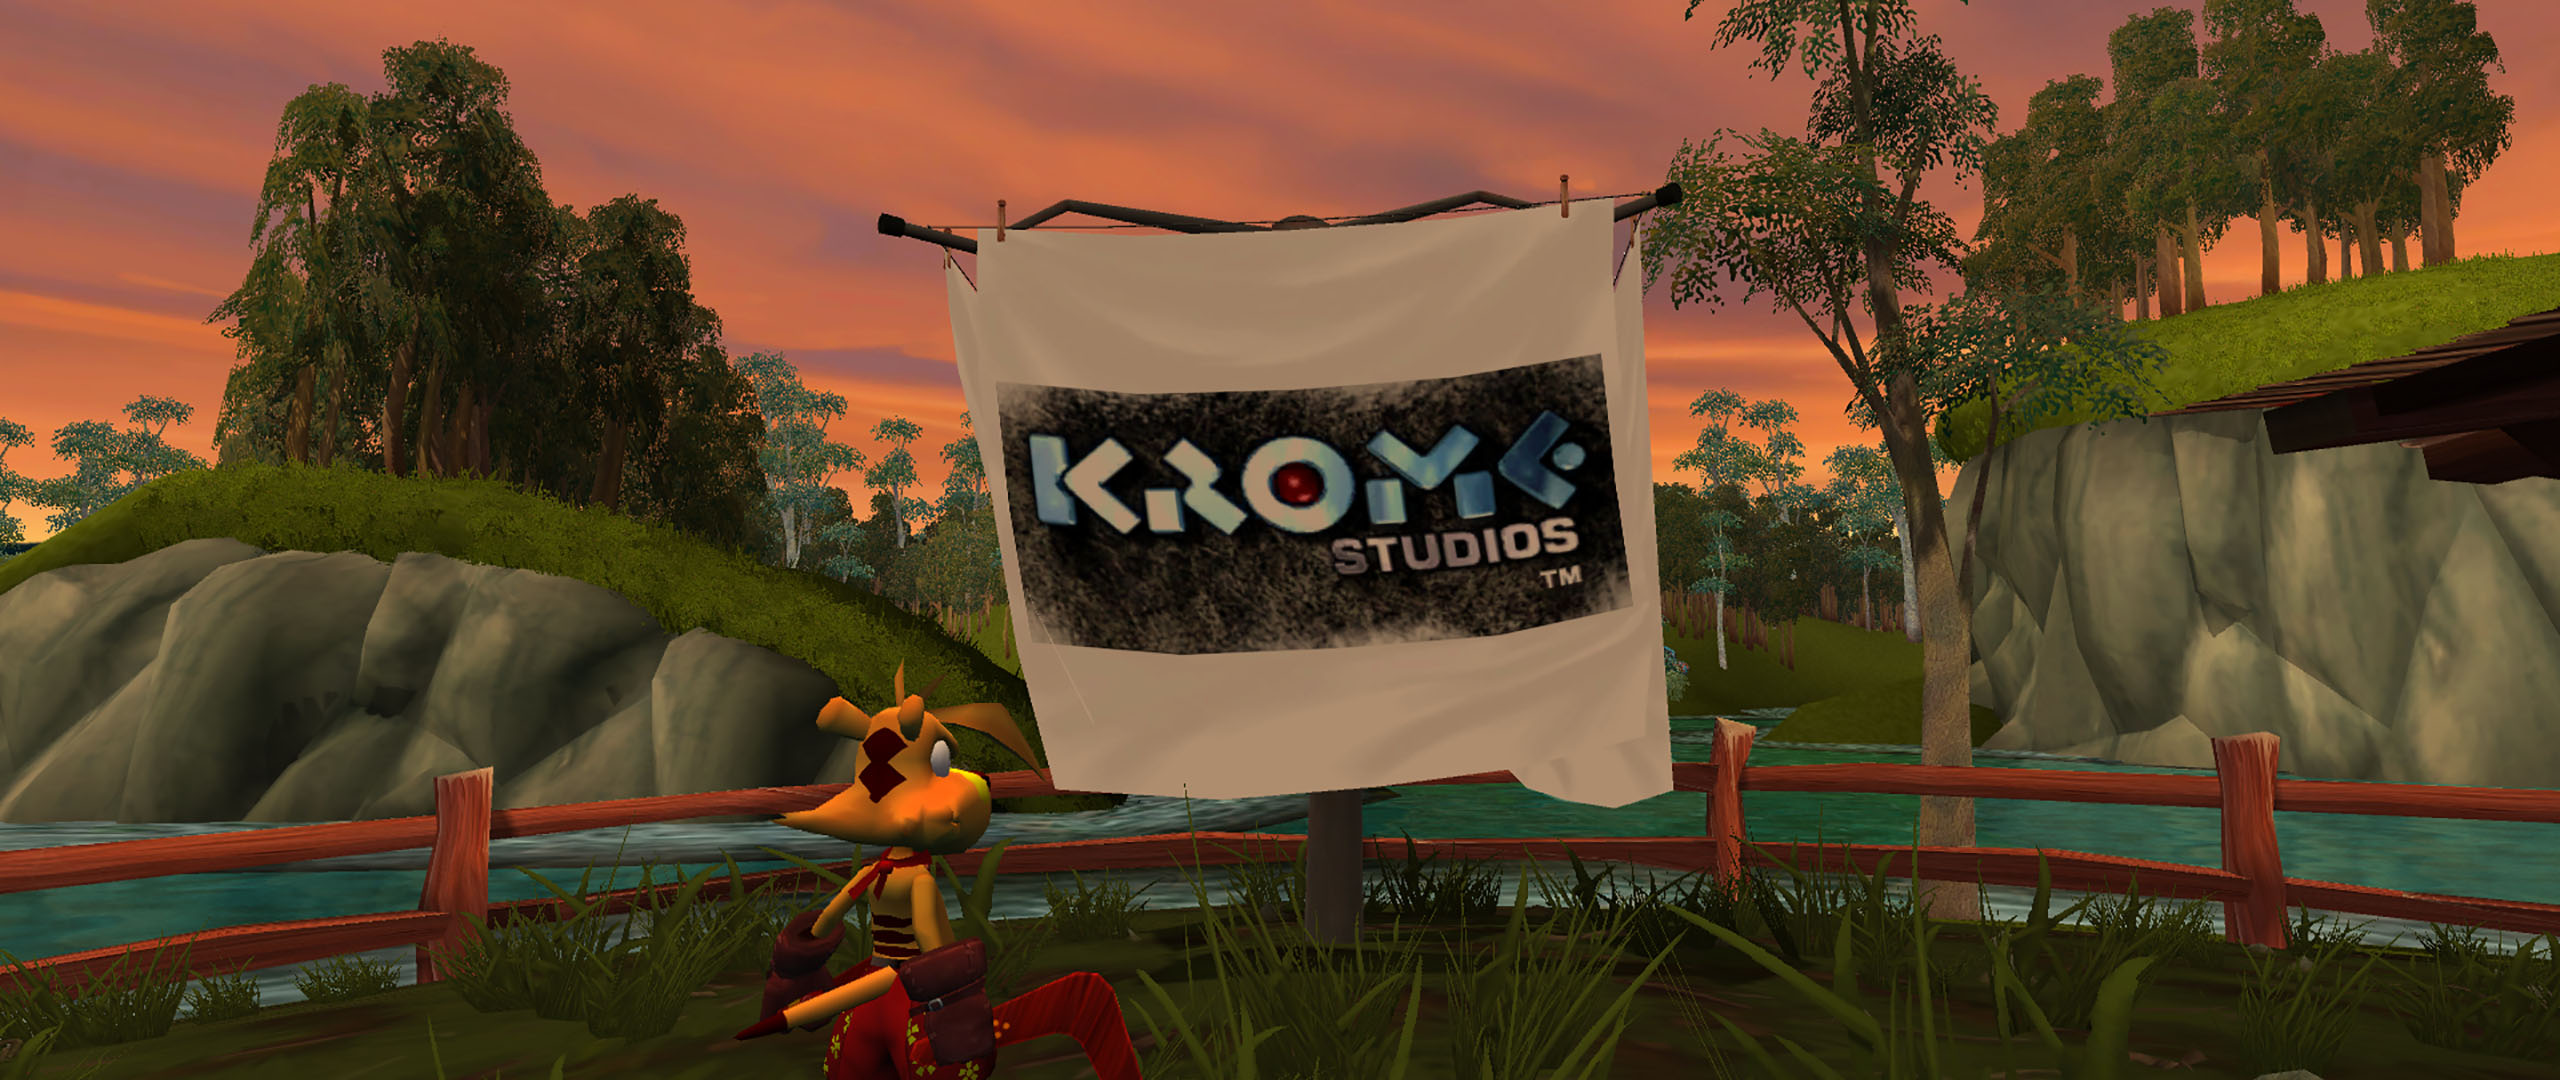 Krome Studios (TY 2, in-credit)